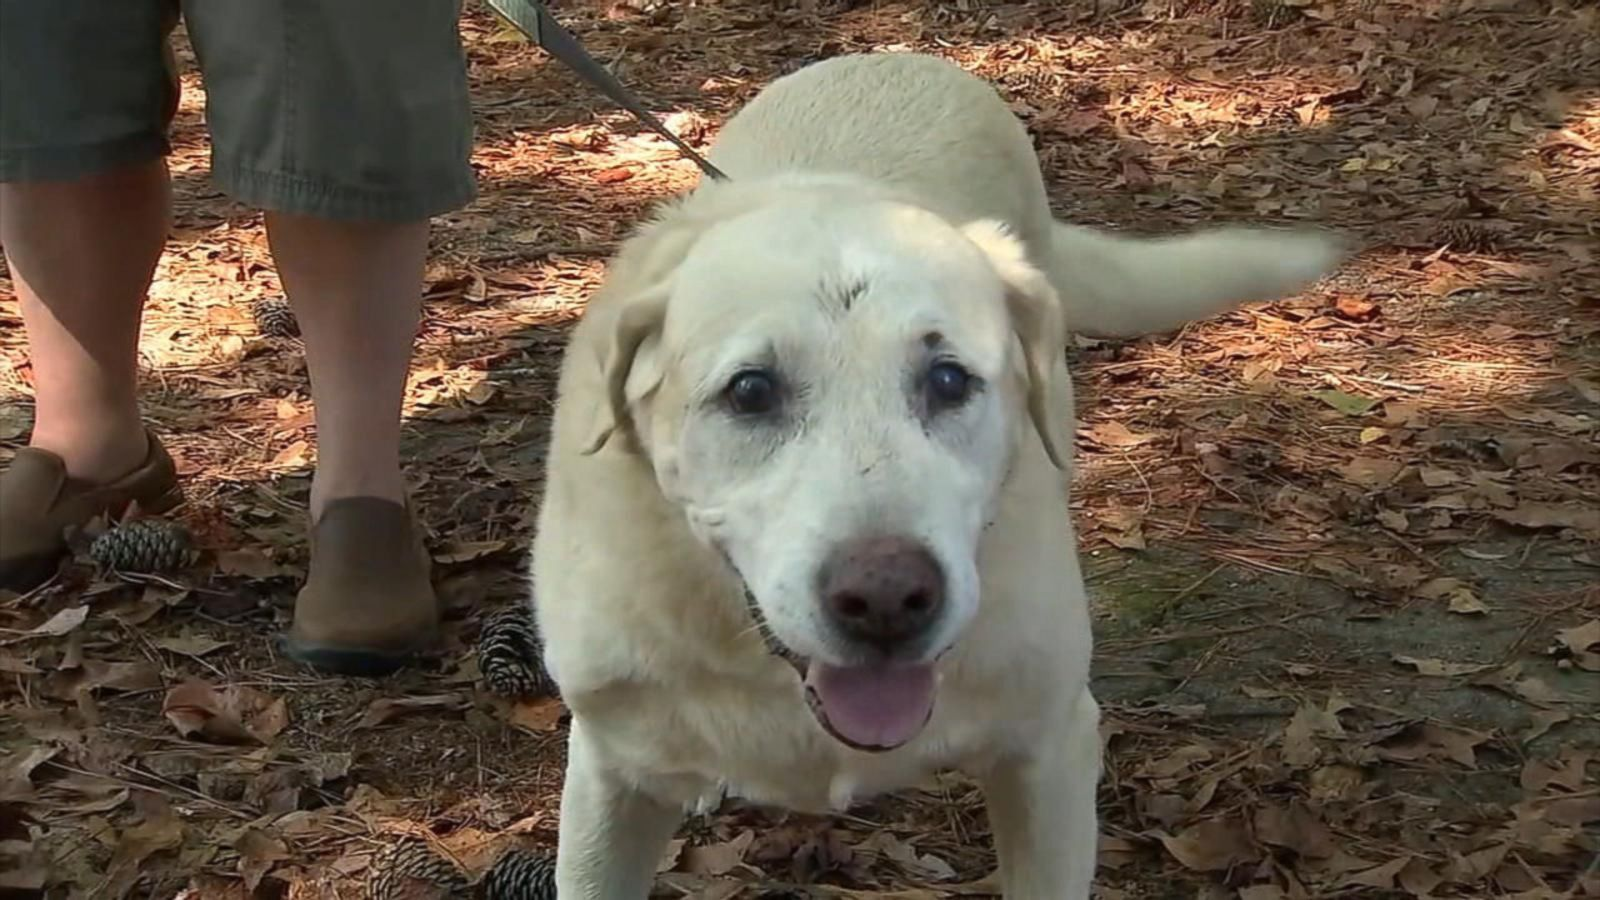 Firefighters worked for several hours to save the Labrador retriever.